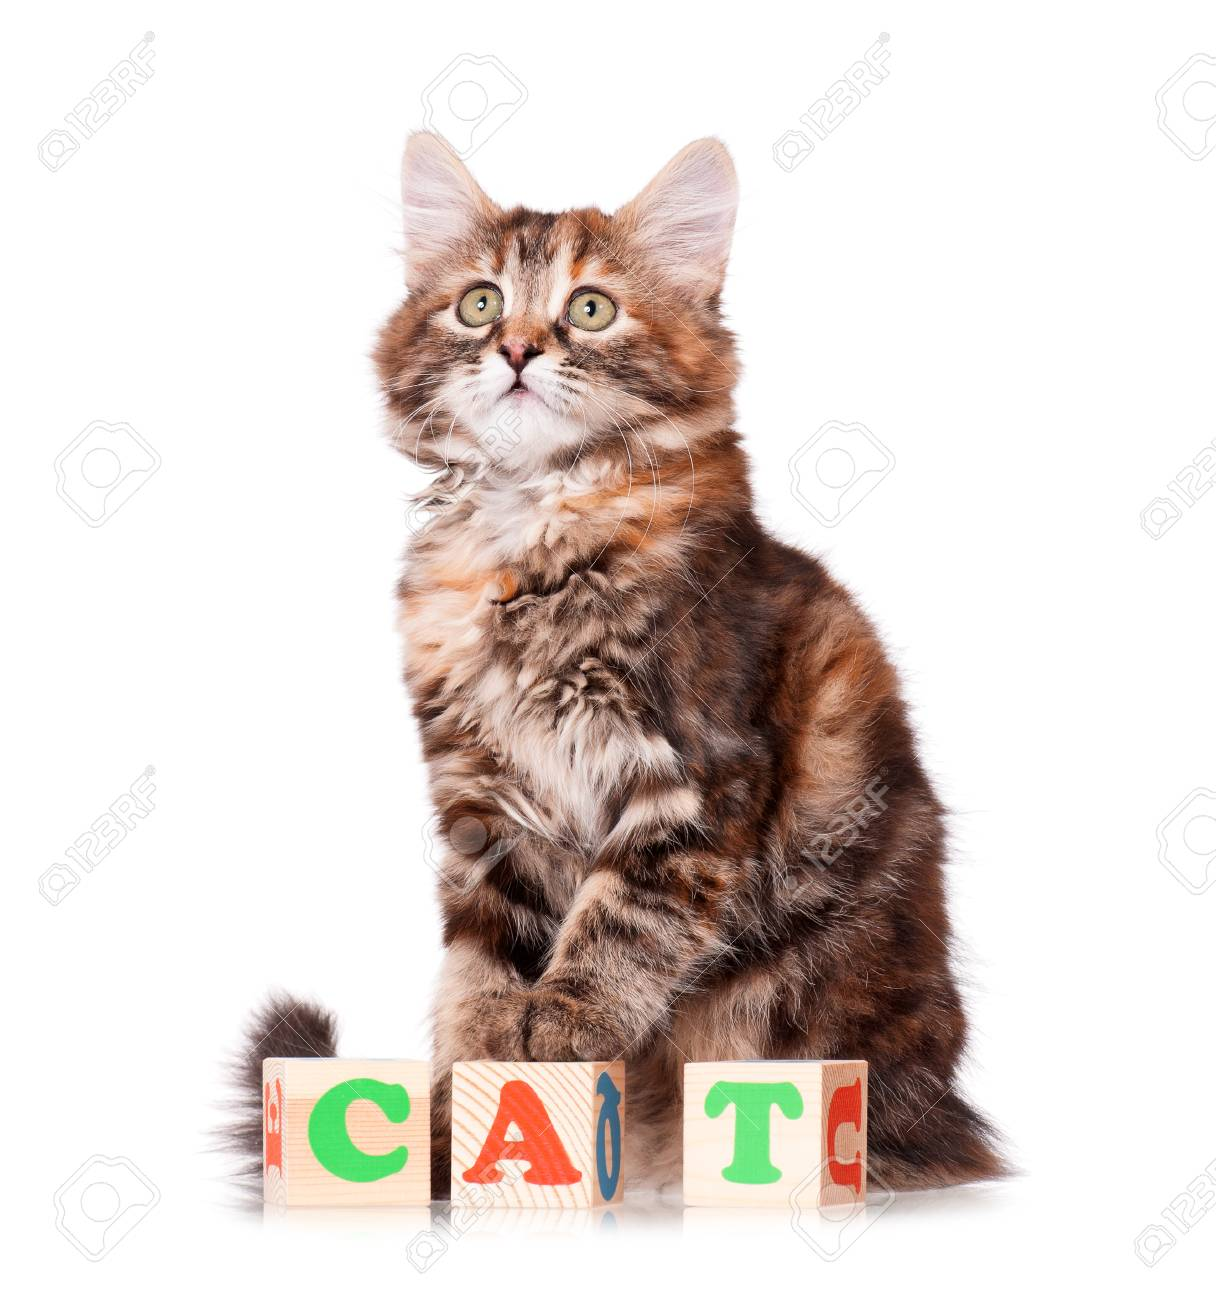 Kitten with wooden toy cubes with letters, isolated on white background Stock Photo - 23724498